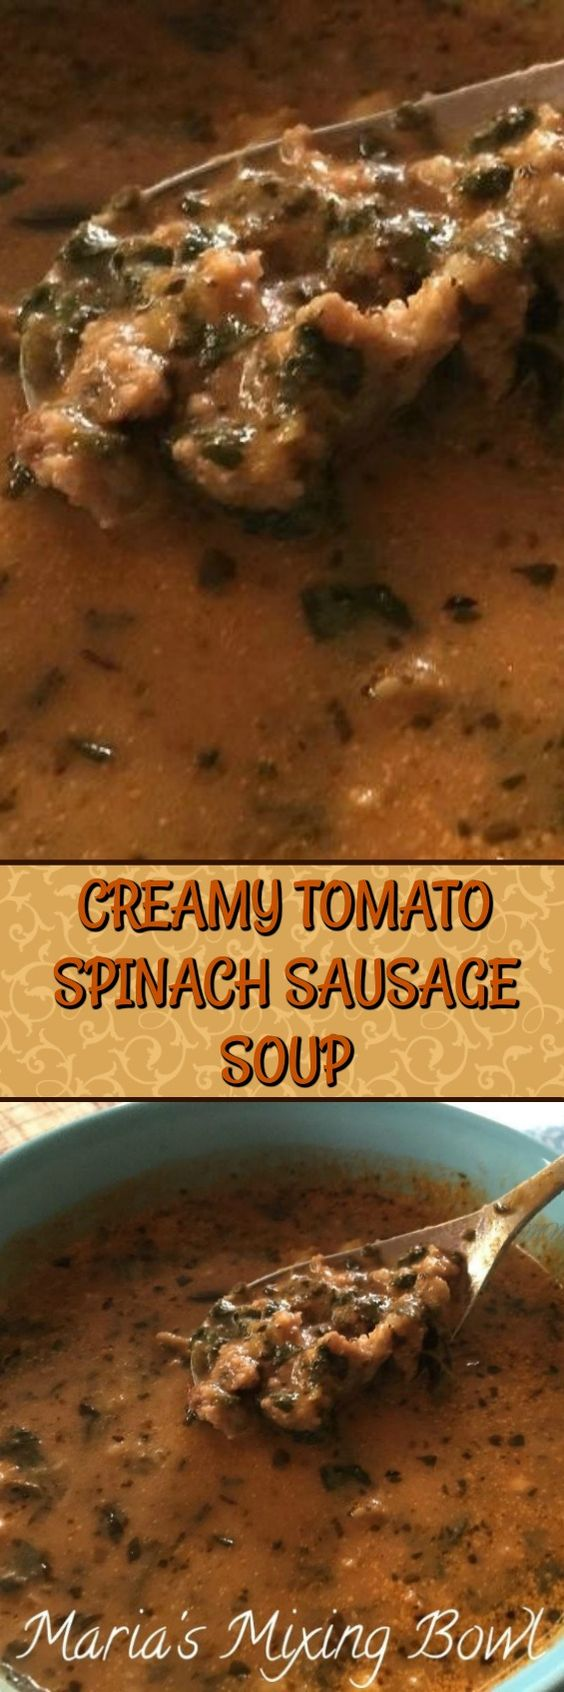 Creamy Tomato spinach Sausage Soup is a a creamy soup recipe full of.  Just a few  ingredients and you have a delicious comforting soup !